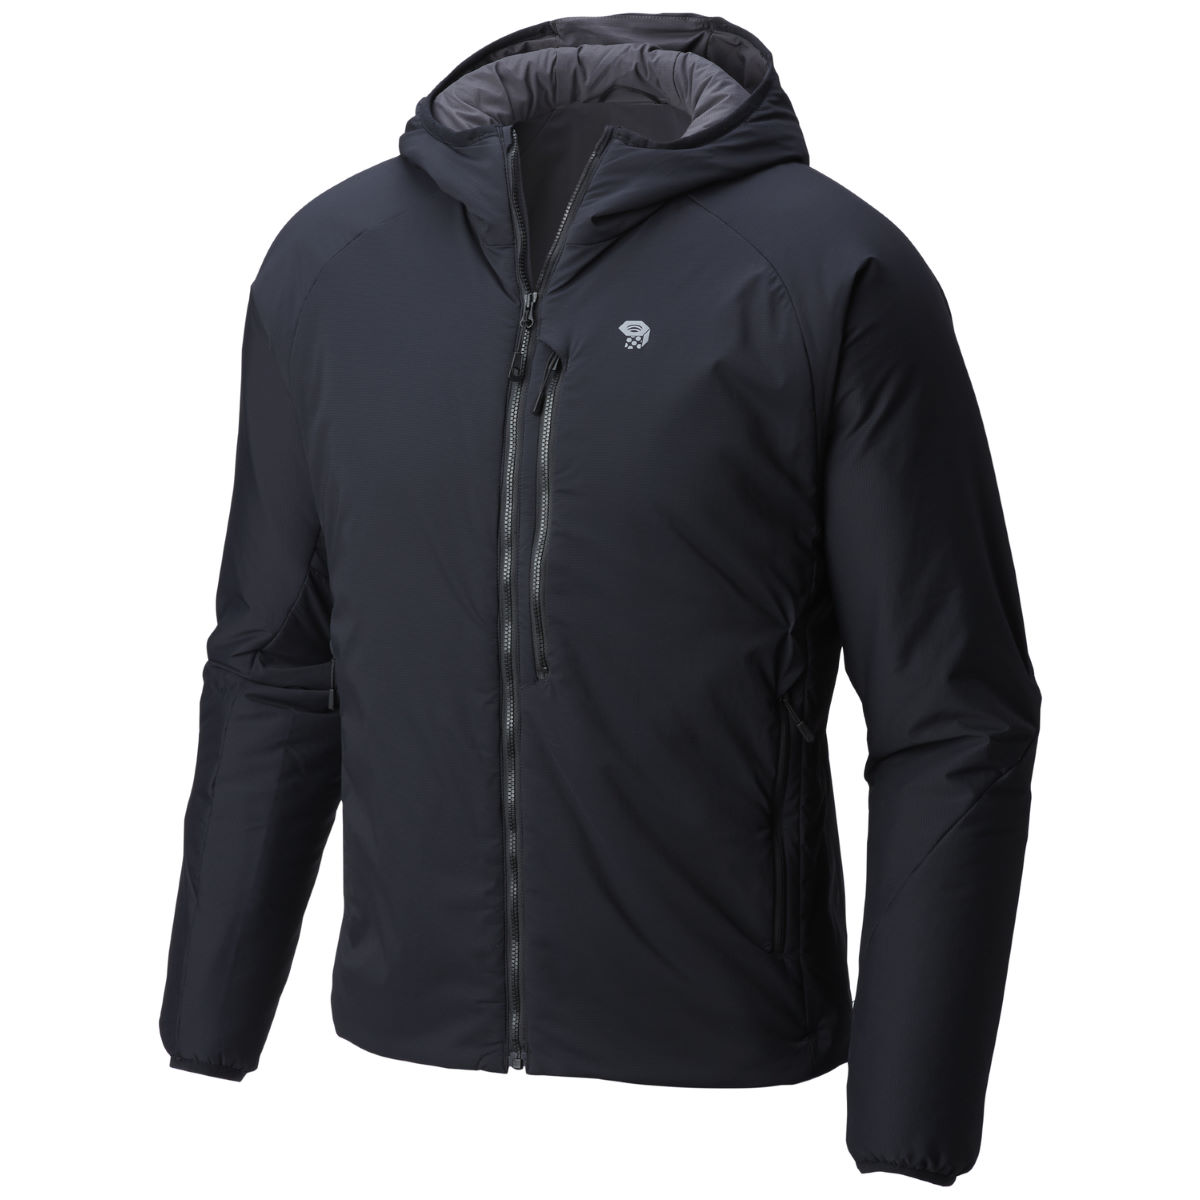 Mountain Hardwear Mountain Hardwear Stretch Ozonic™ Jacket   Jackets